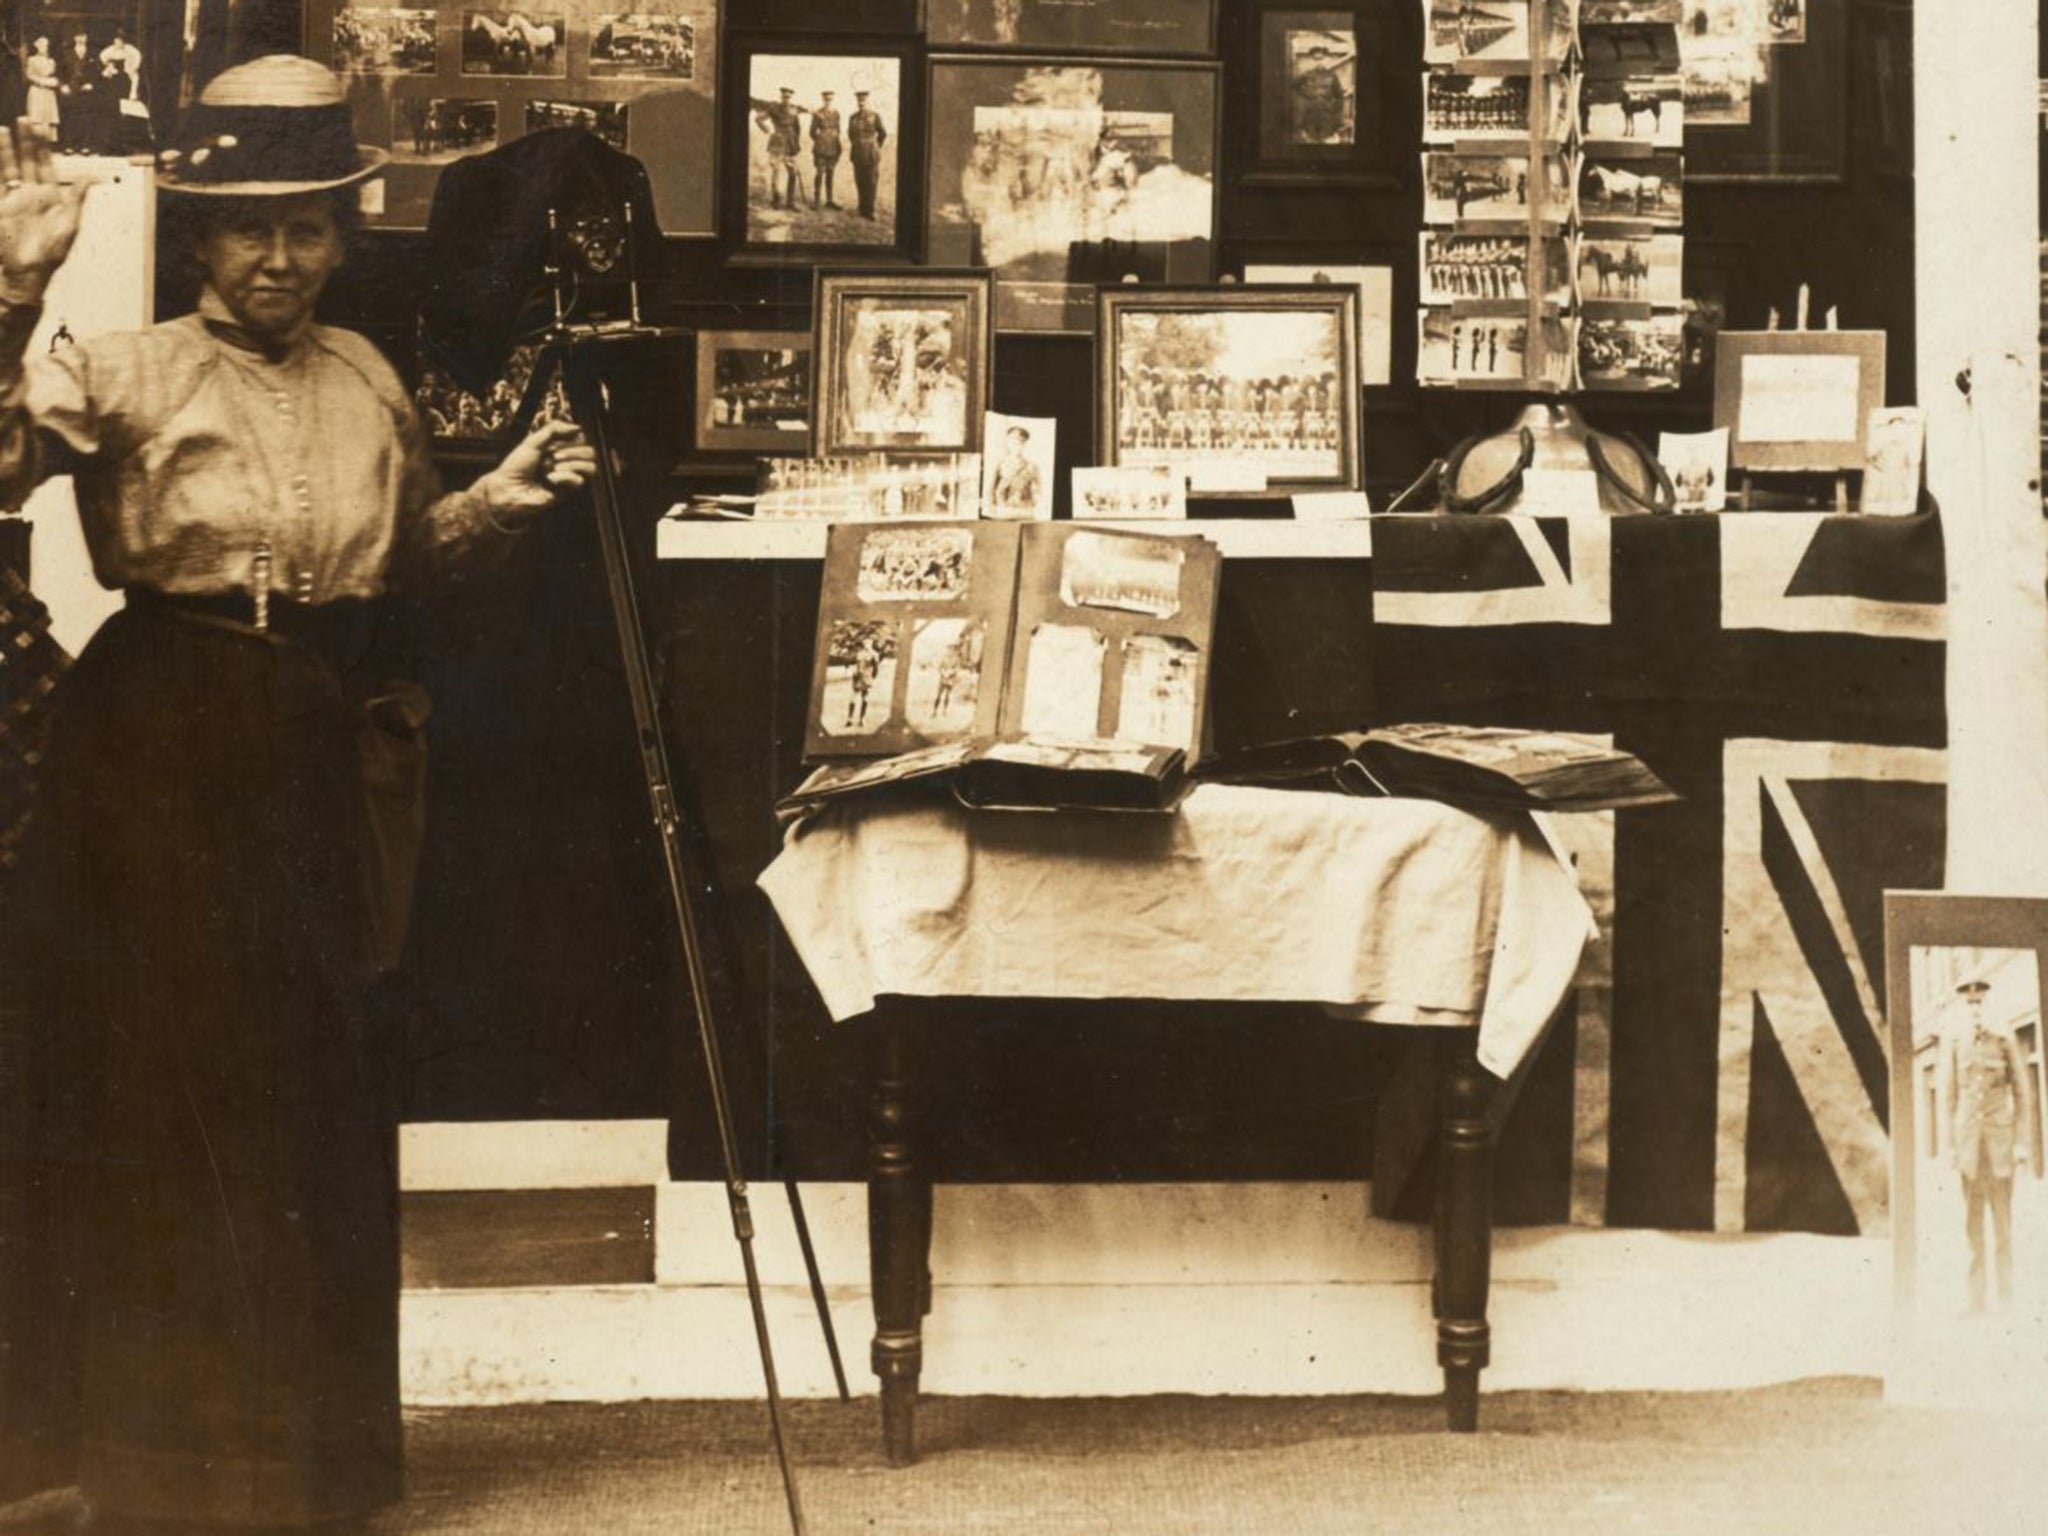 Christina Broom: The photo pioneer finally getting the exposure she deserves